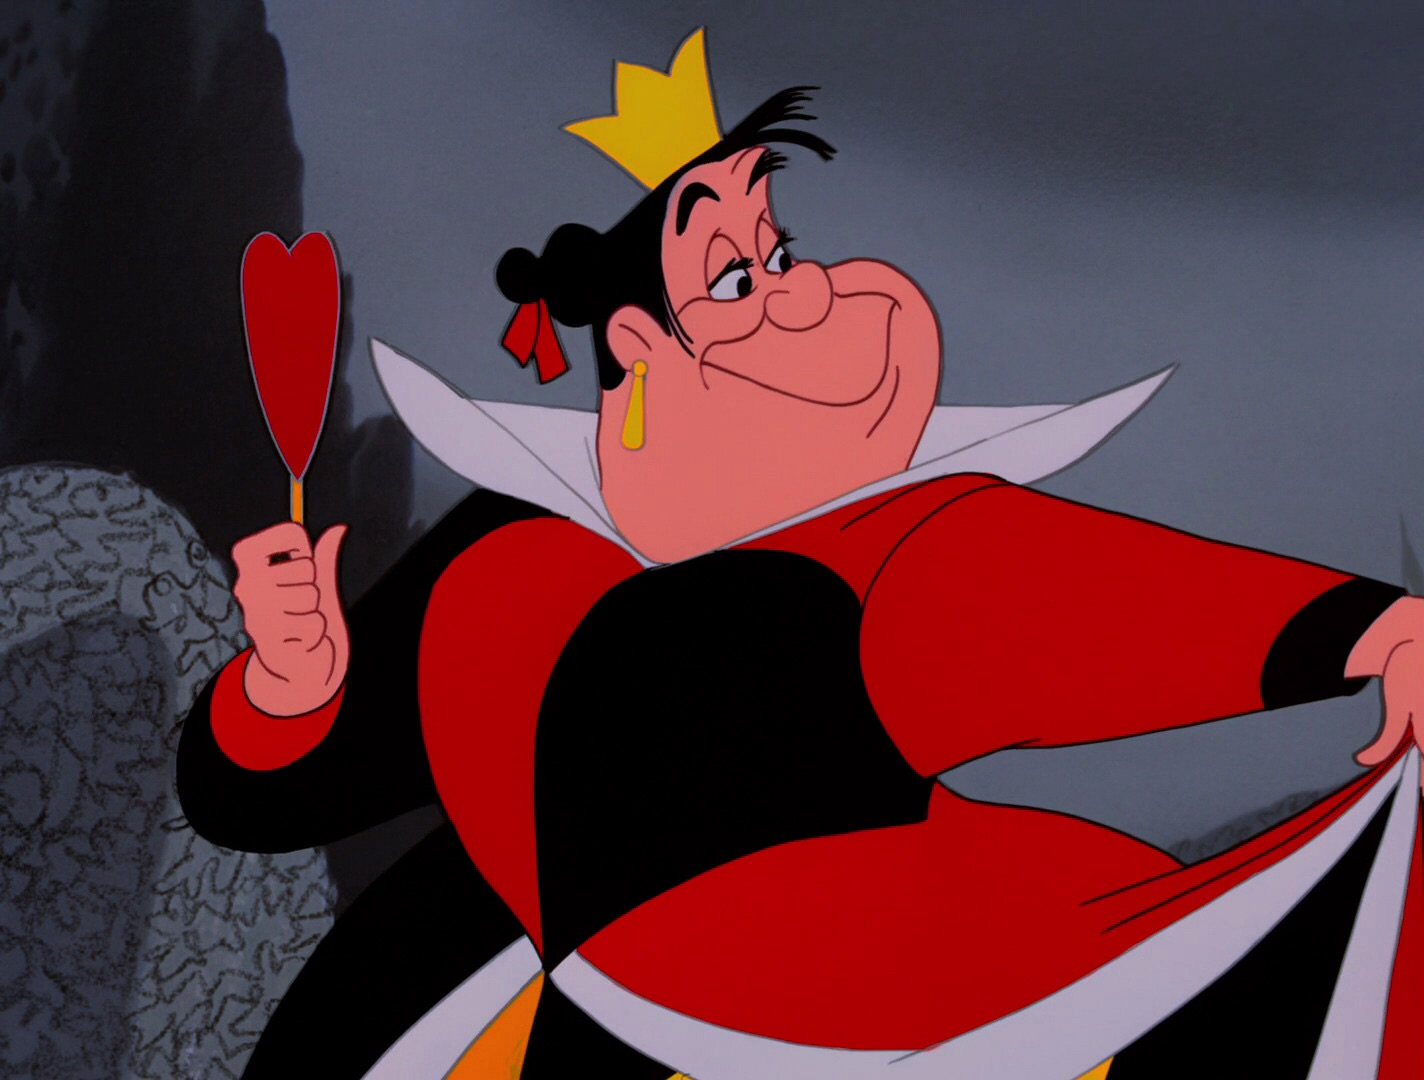 Disney queen of hearts clipart image Queen of Hearts | Disney Wiki | Fandom powered by Wikia image